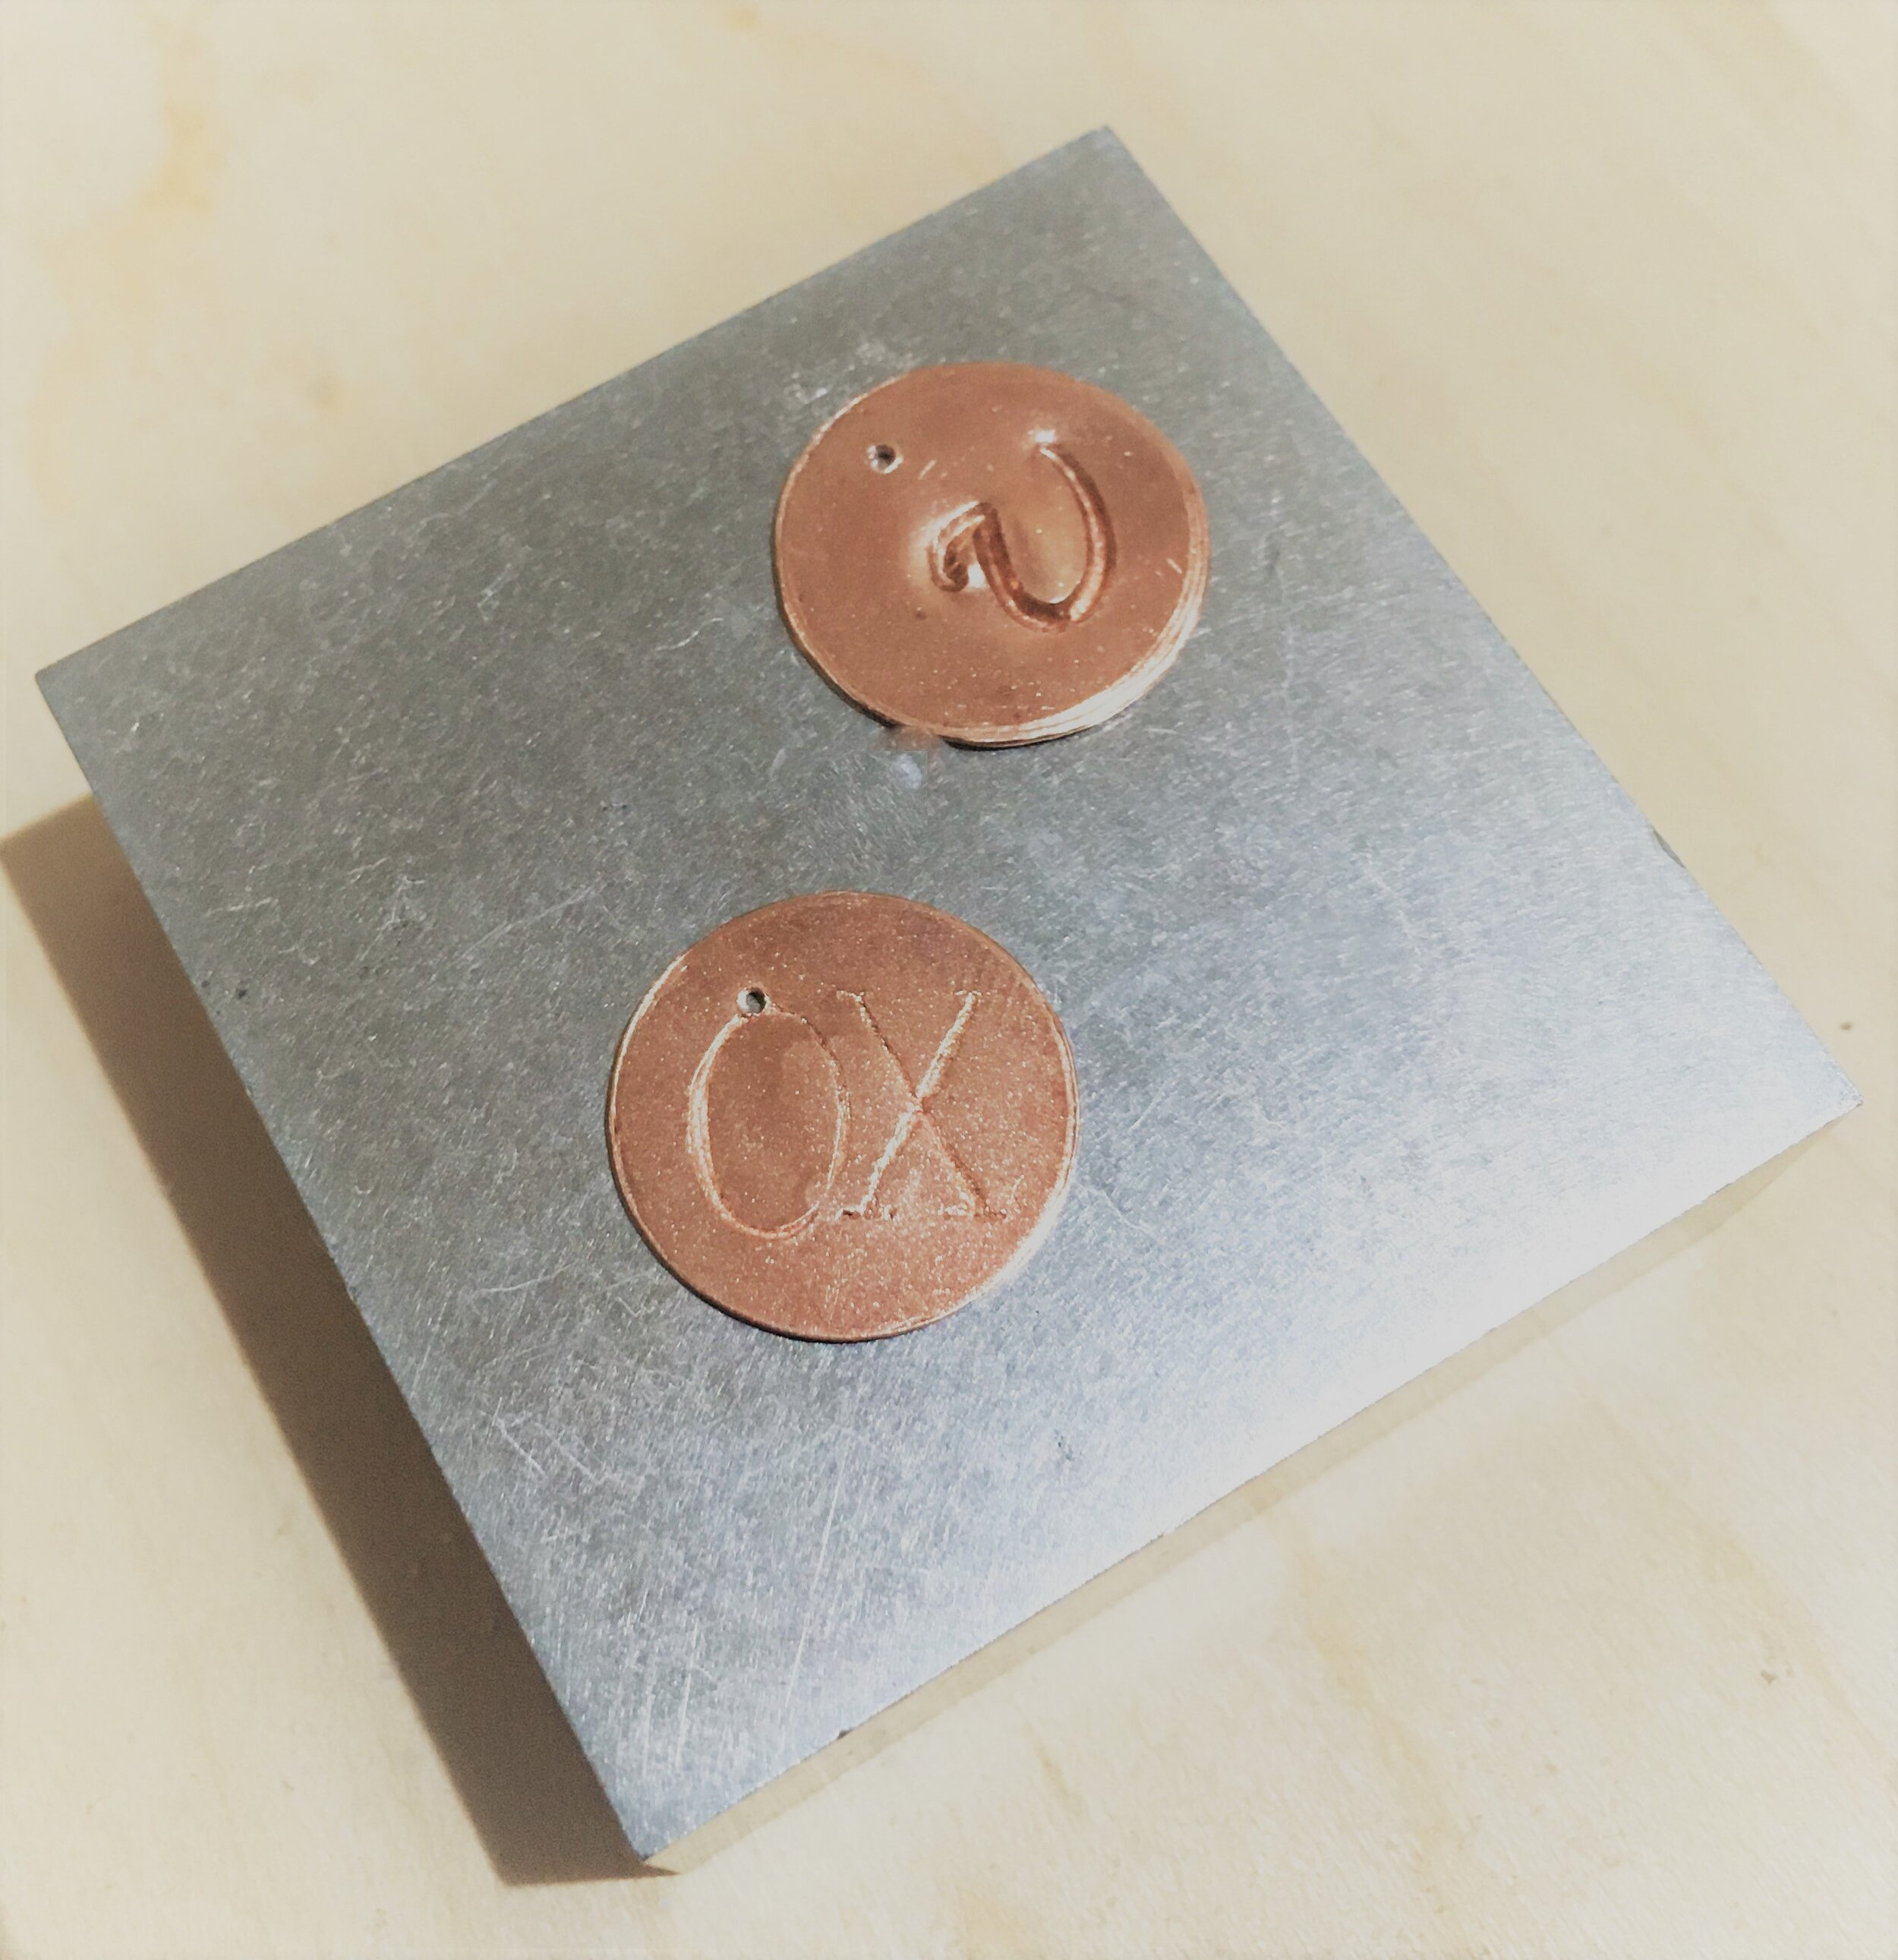 This image shows different fonts you'll get to choose from at this event.  This picture shows two copper tags on a steel block.